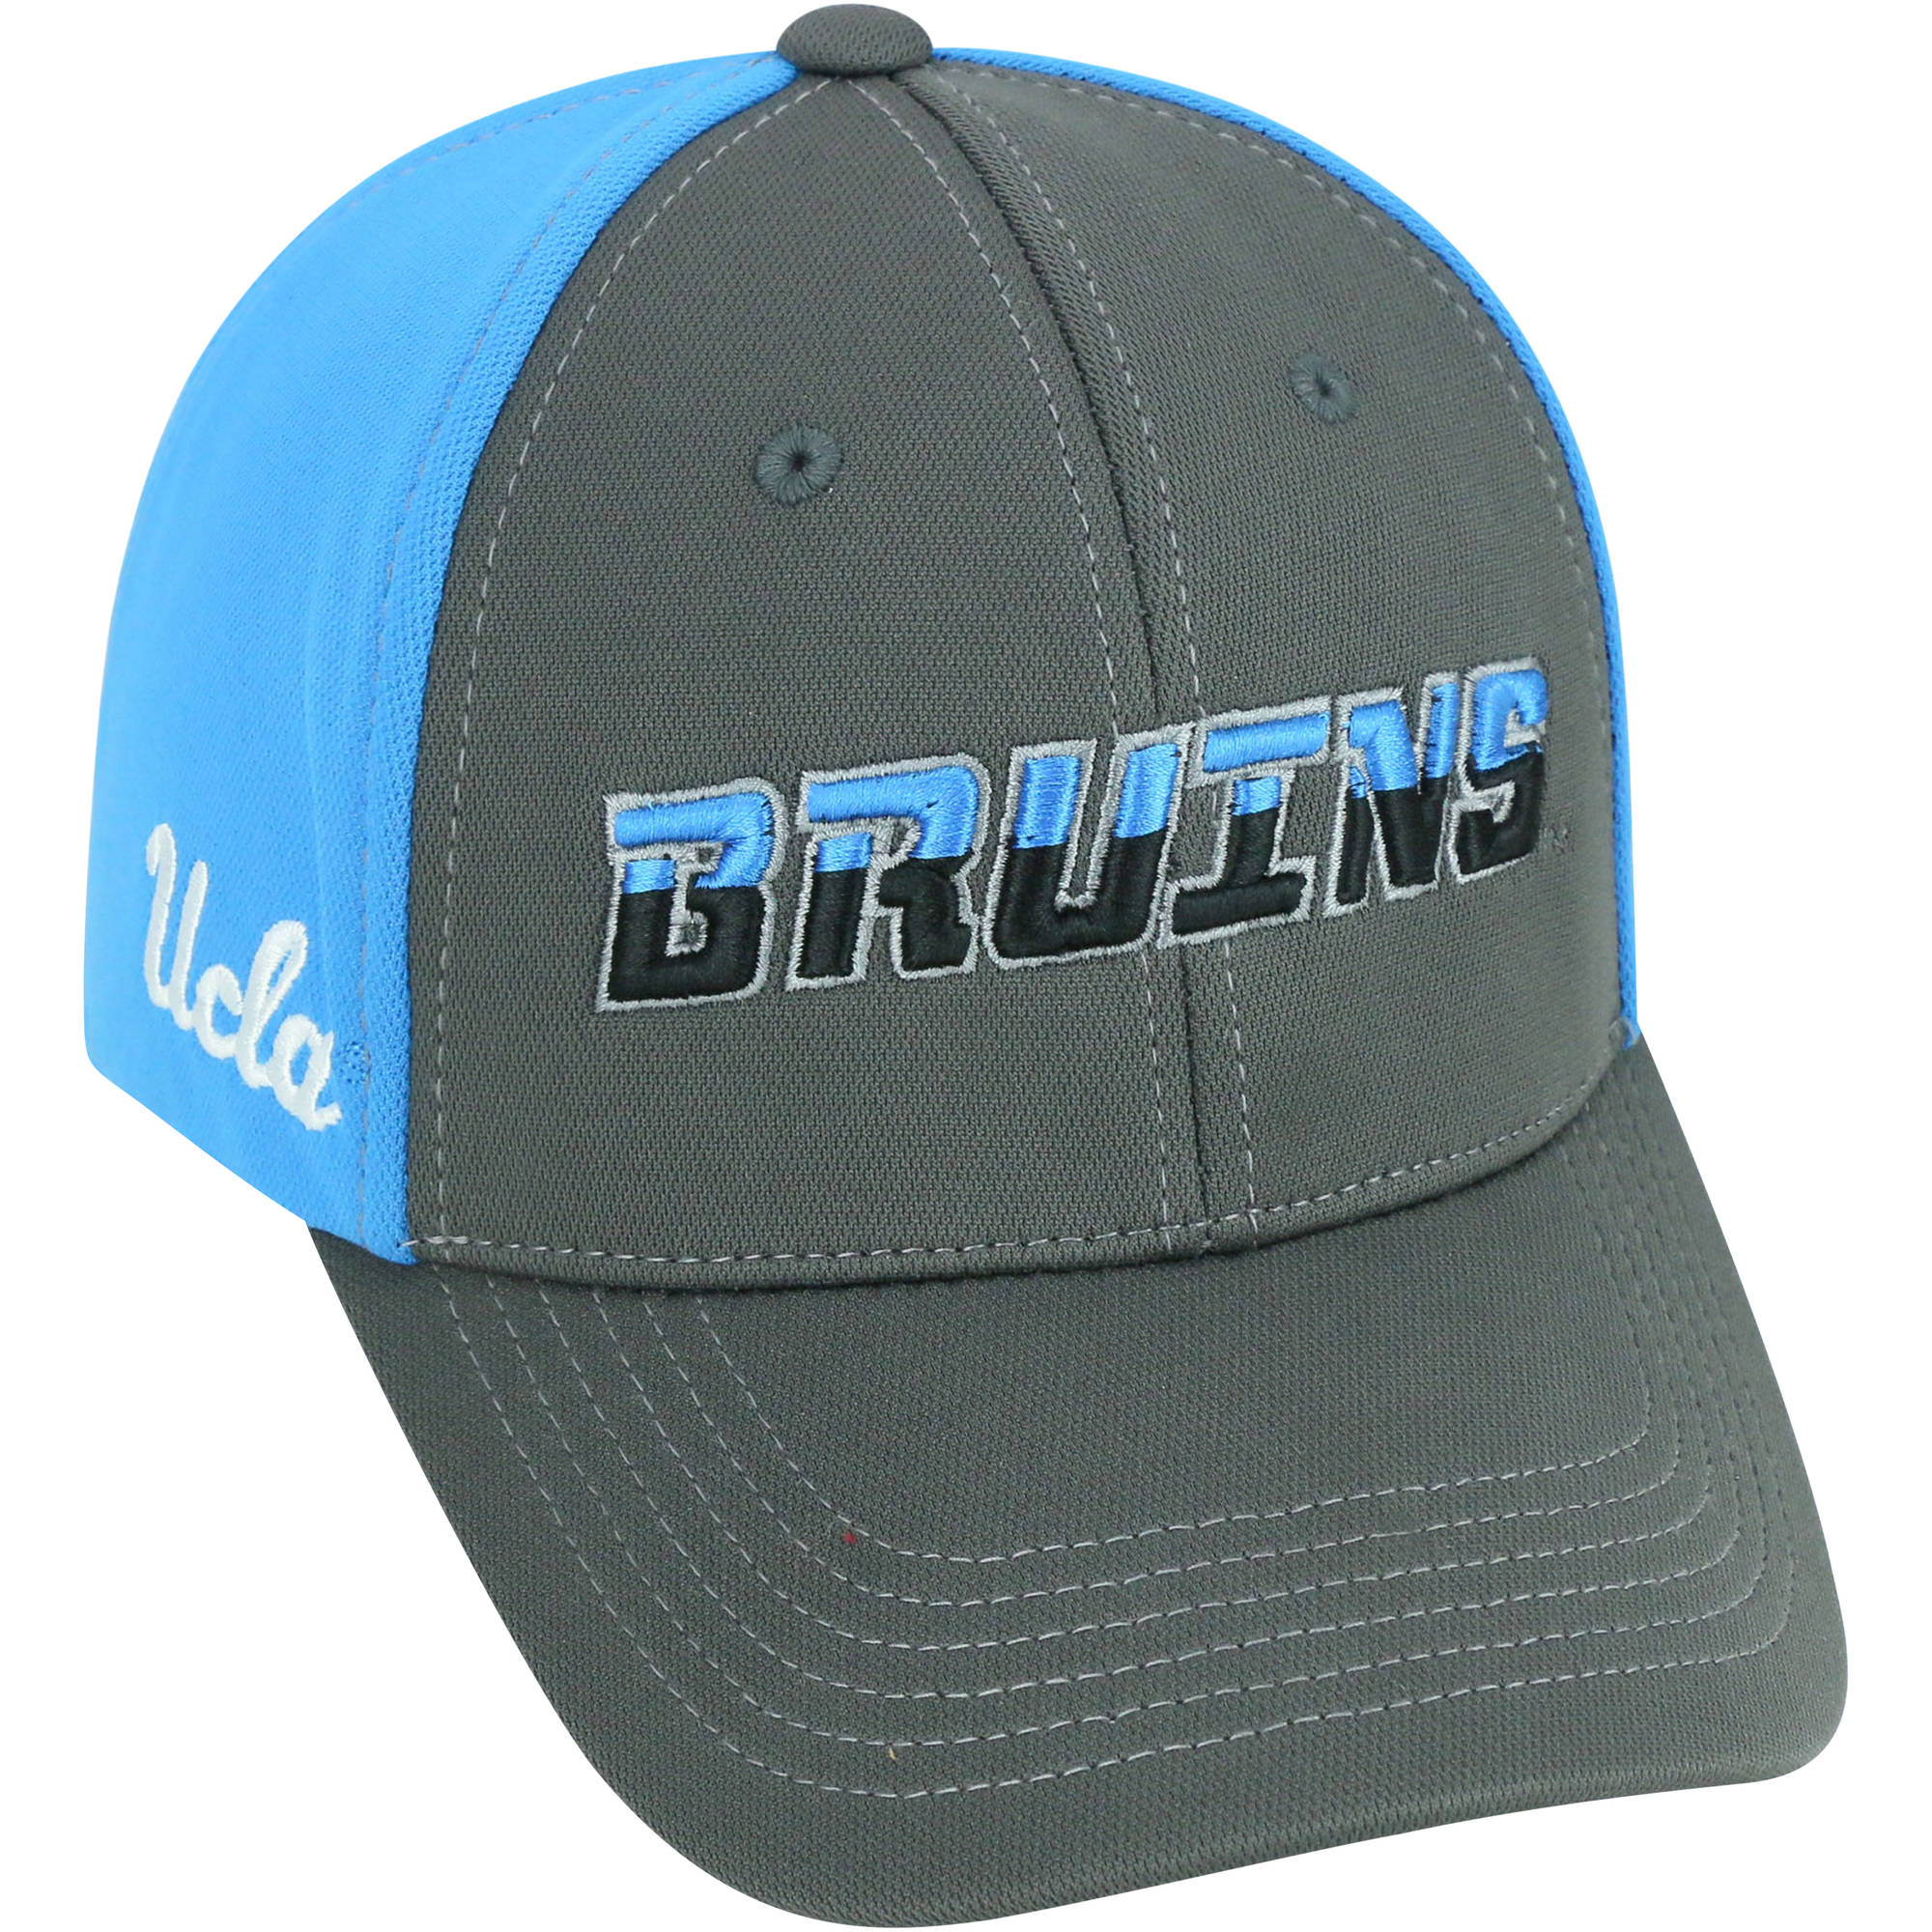 University Of Ucla Bruins Grey Two Tone Baseball Cap